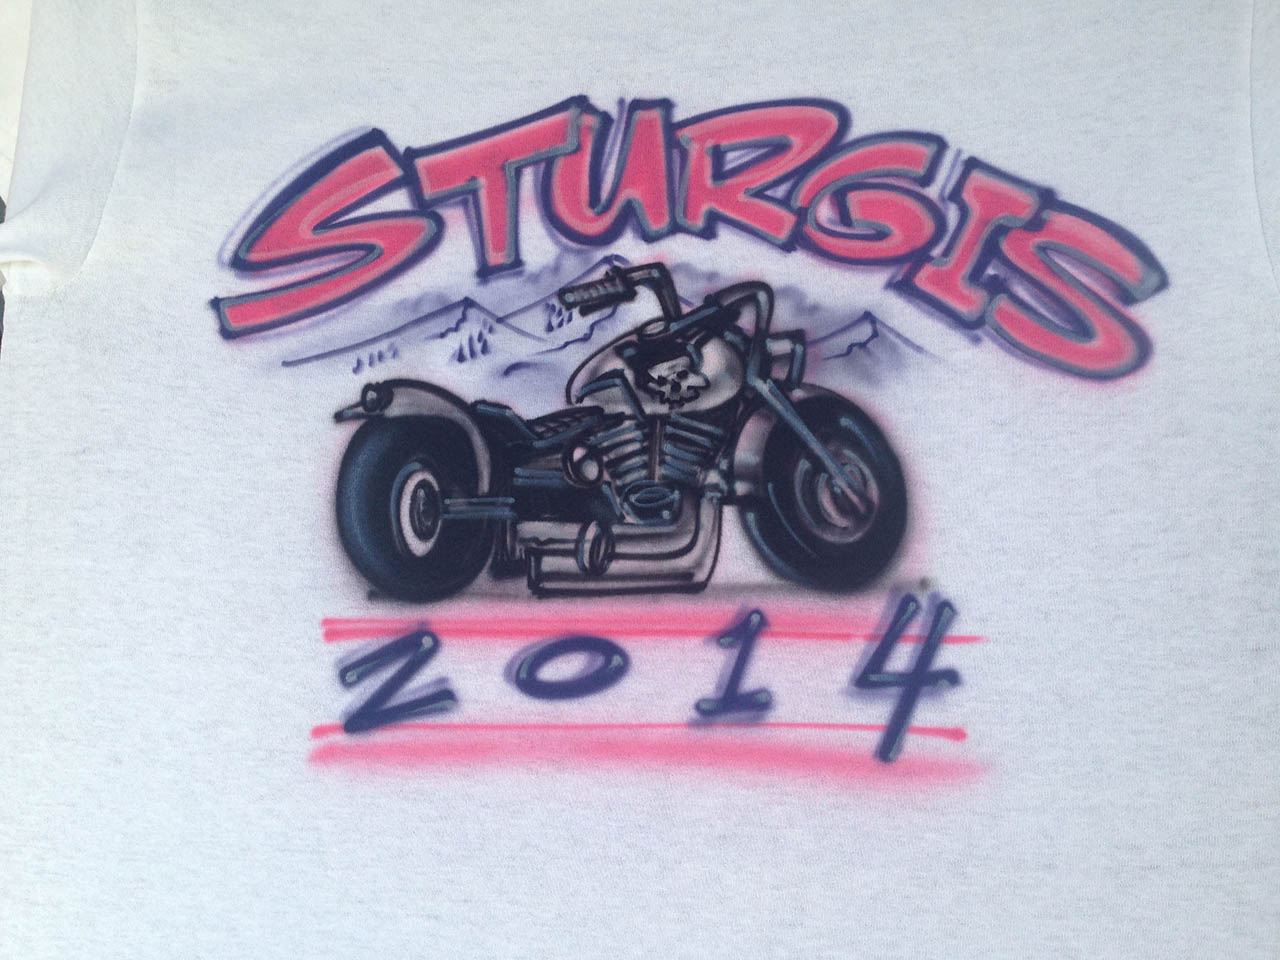 Sturgis airbrushed motorcycle